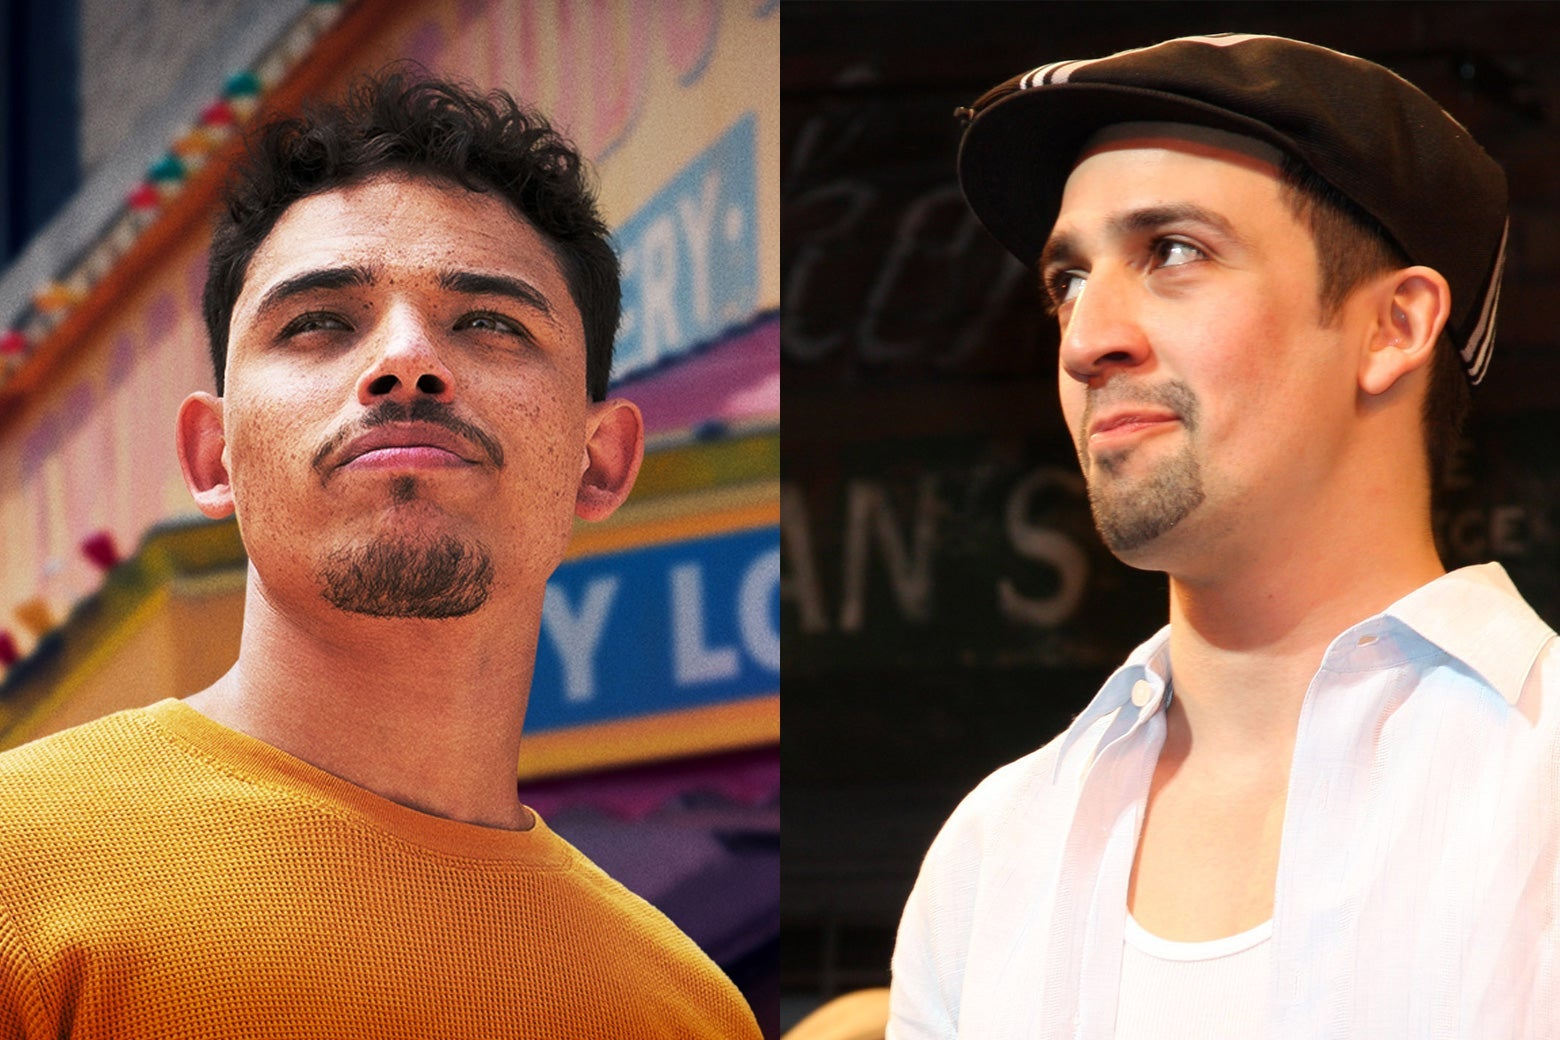 Ramos looks skyward in an orange shirt and curly hair. Miranda wears a smirk, a cap, and a slightly more traditional goatee.